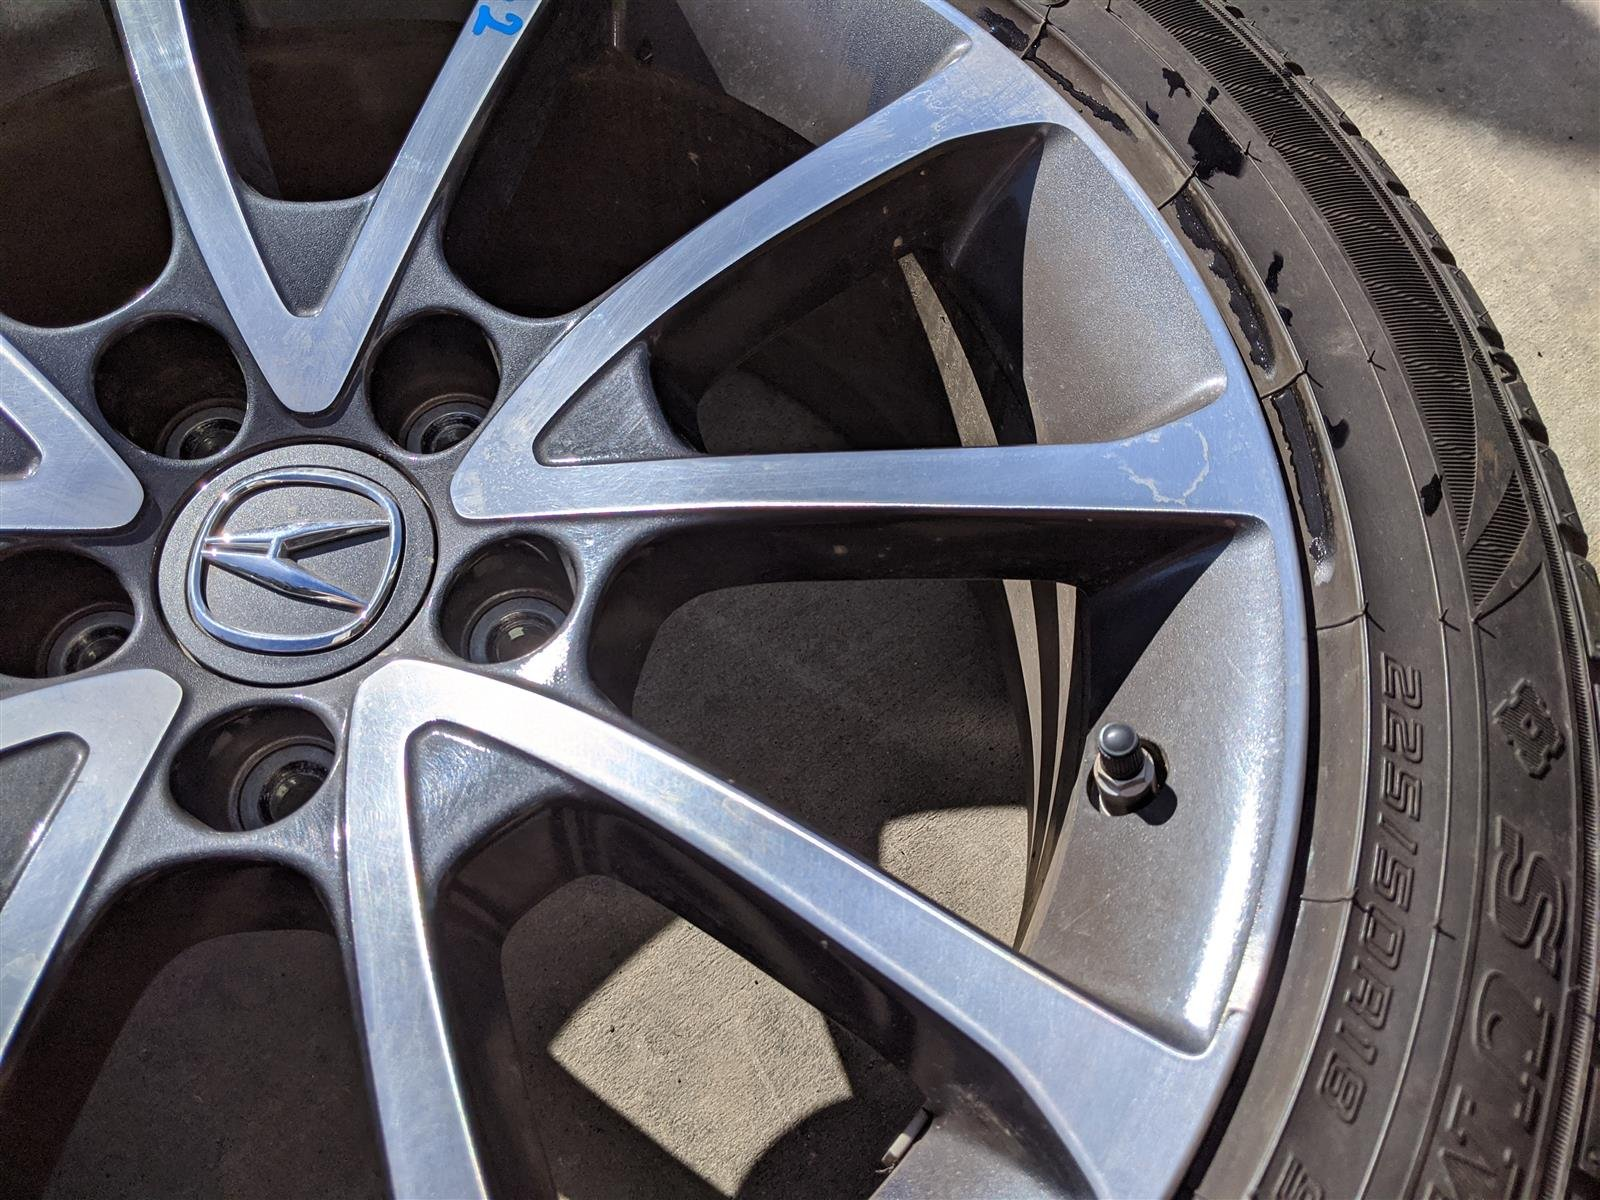 2015 Acura TLX 18x7.5 10 Spoke Alloy Wheel Replacement